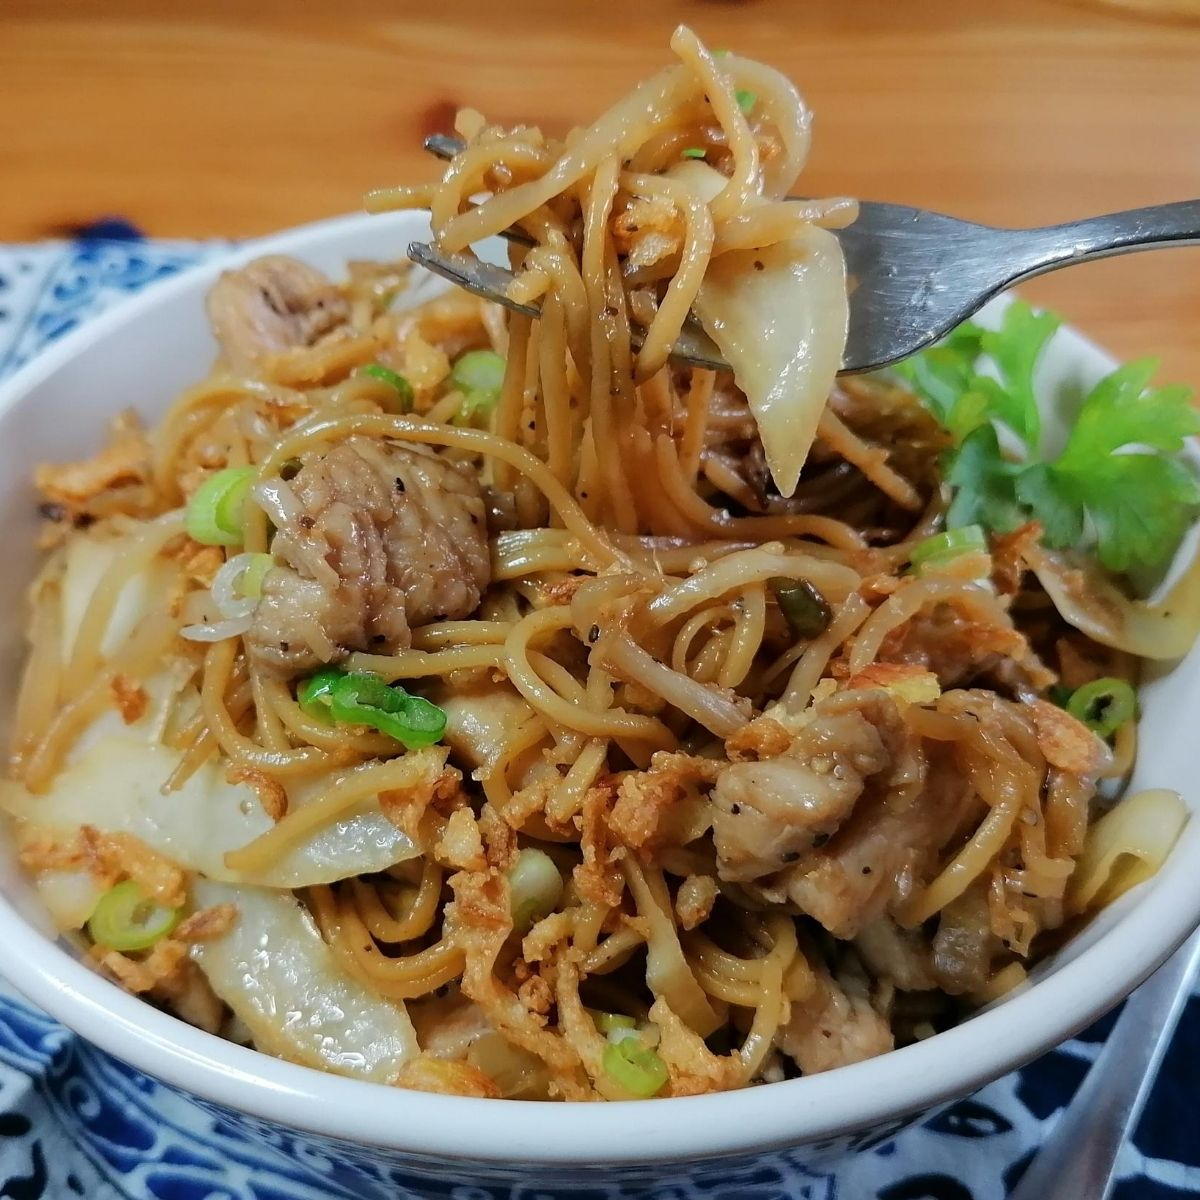 Mie goreng - Indonesian stir-fried noodles